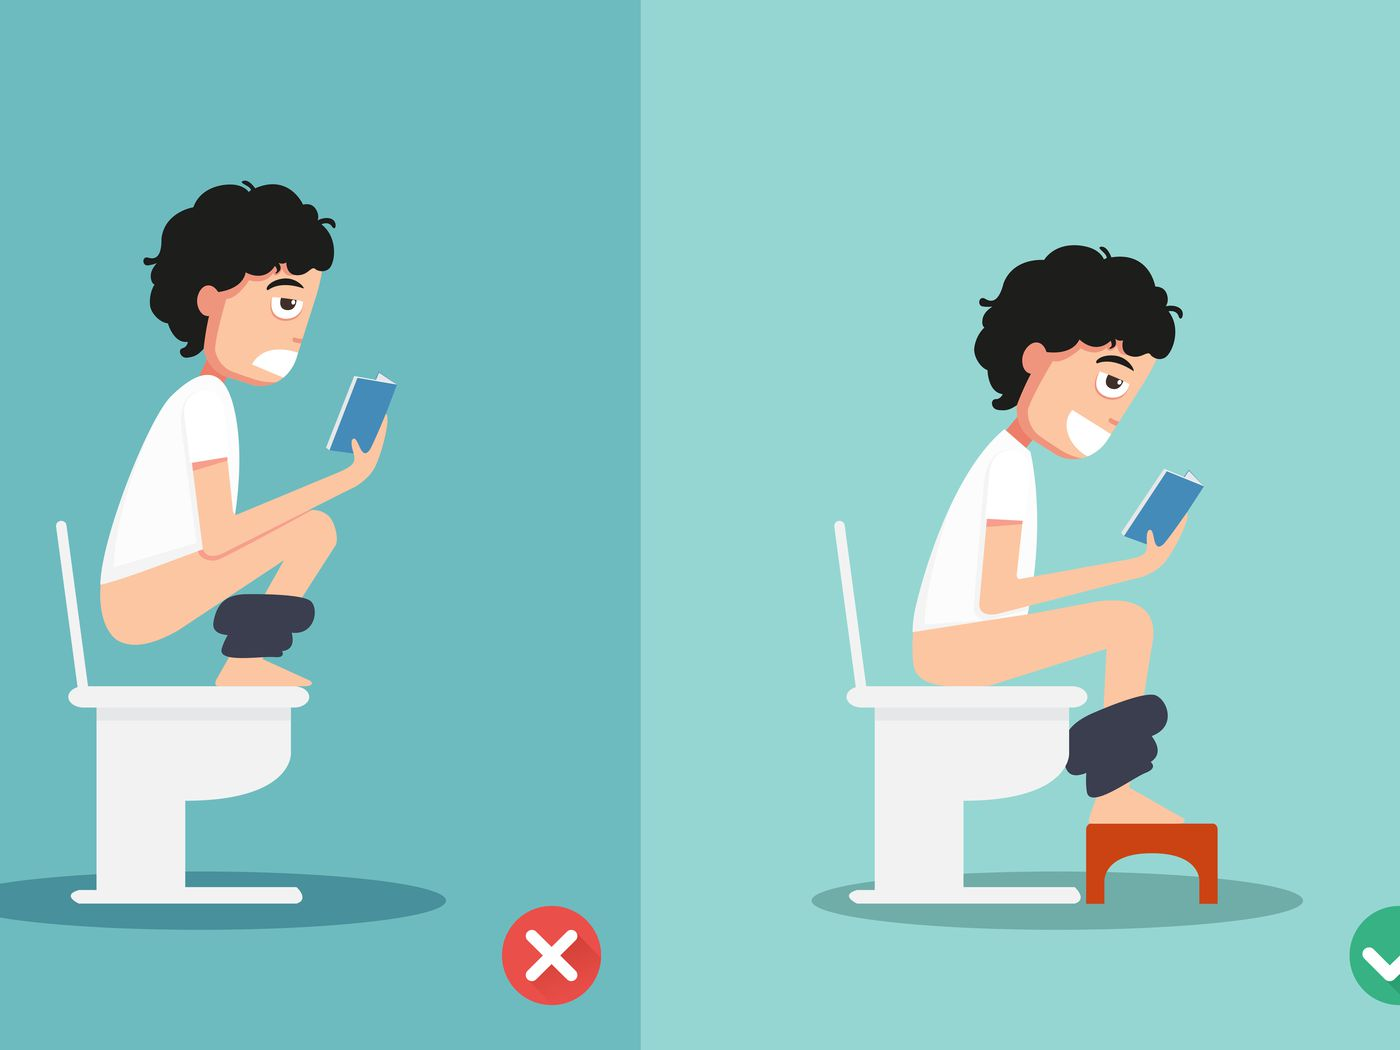 One Weird Trick That Might Help You Poop Better Vox